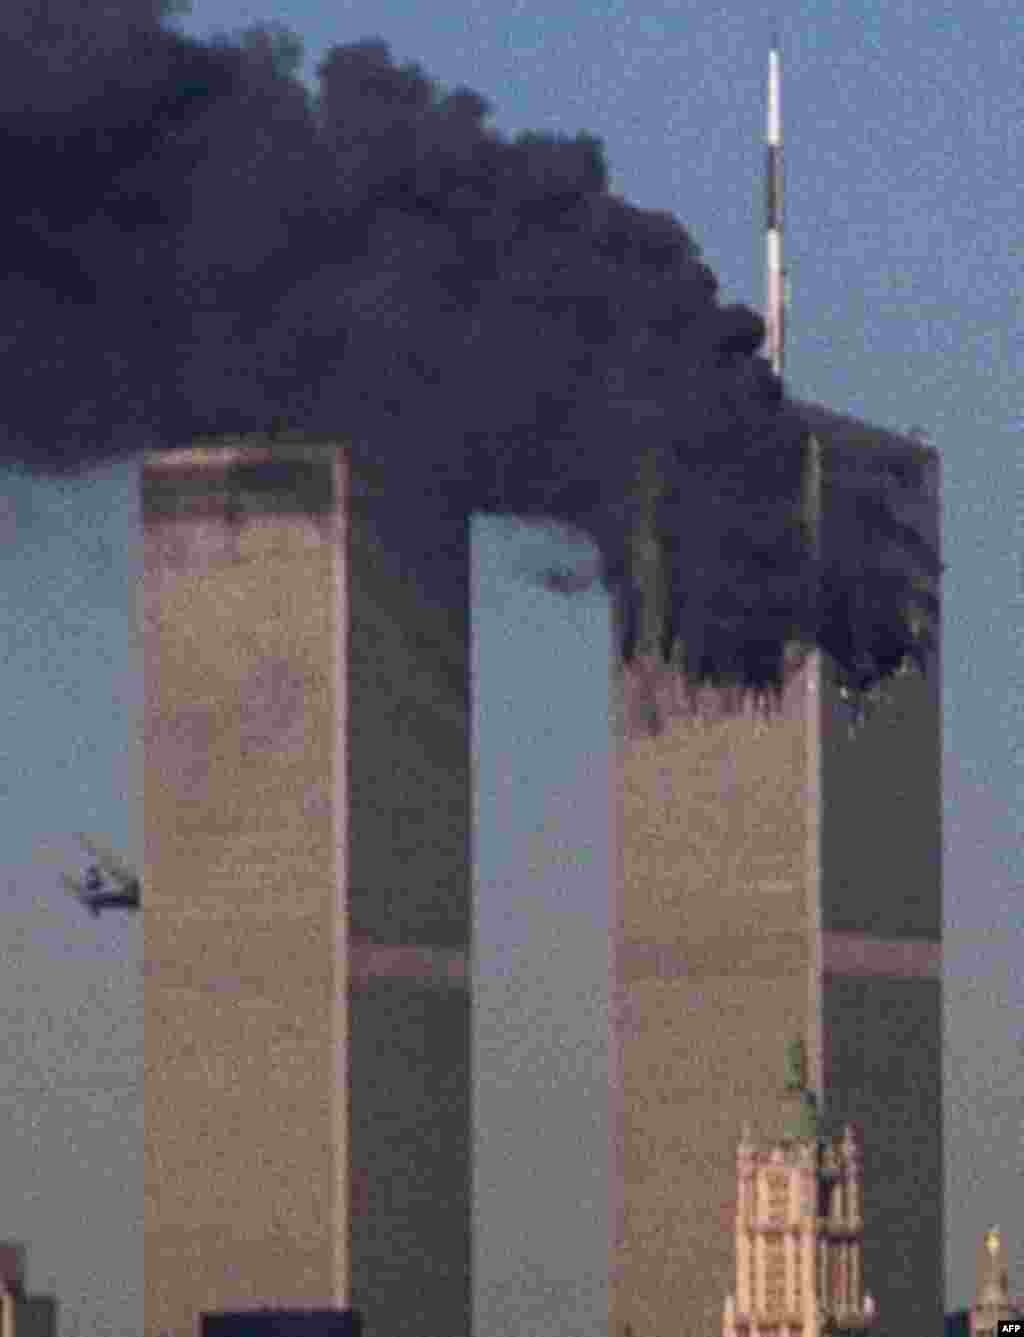 A jet crashes into the World Trade Center in New York, Tuesday, Sept. 11, 2001. Terrorists crashed two planes into the World Trade Center, and the twin 110-story towers collapsed Tuesday morning. (AP Photo/Moshe Bursuker)